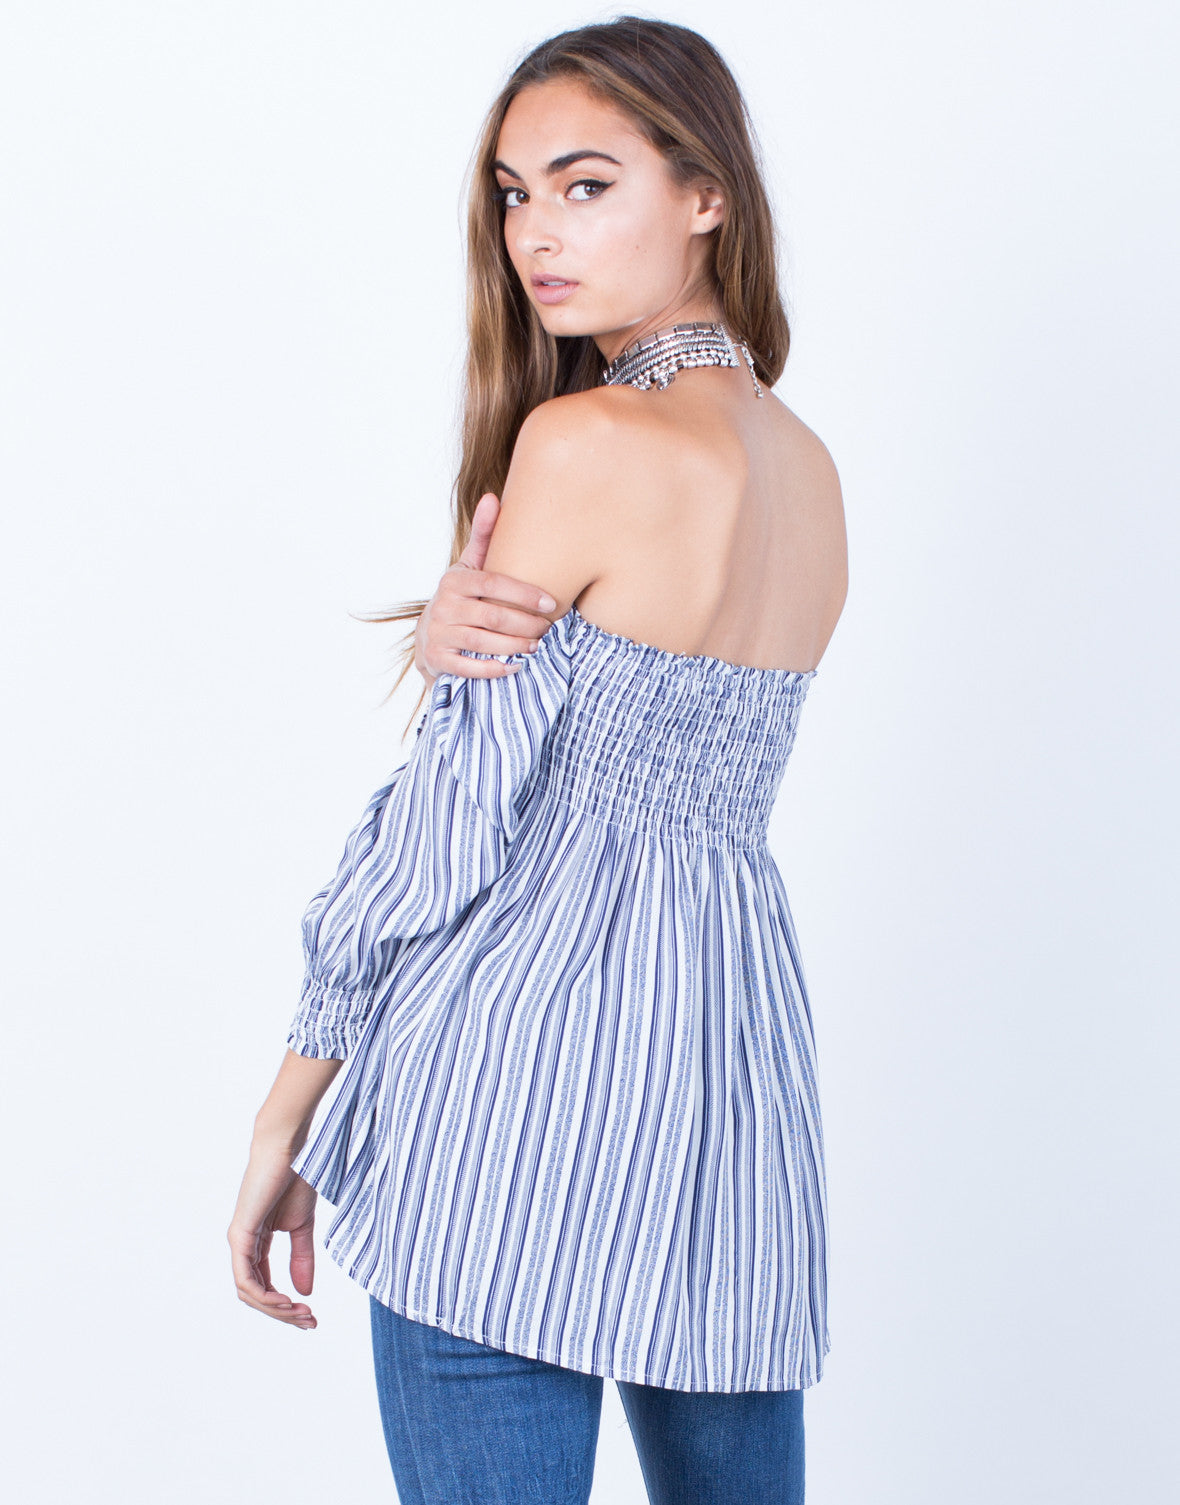 Back View of Flaunt it Off-the-Shoulder Blouse